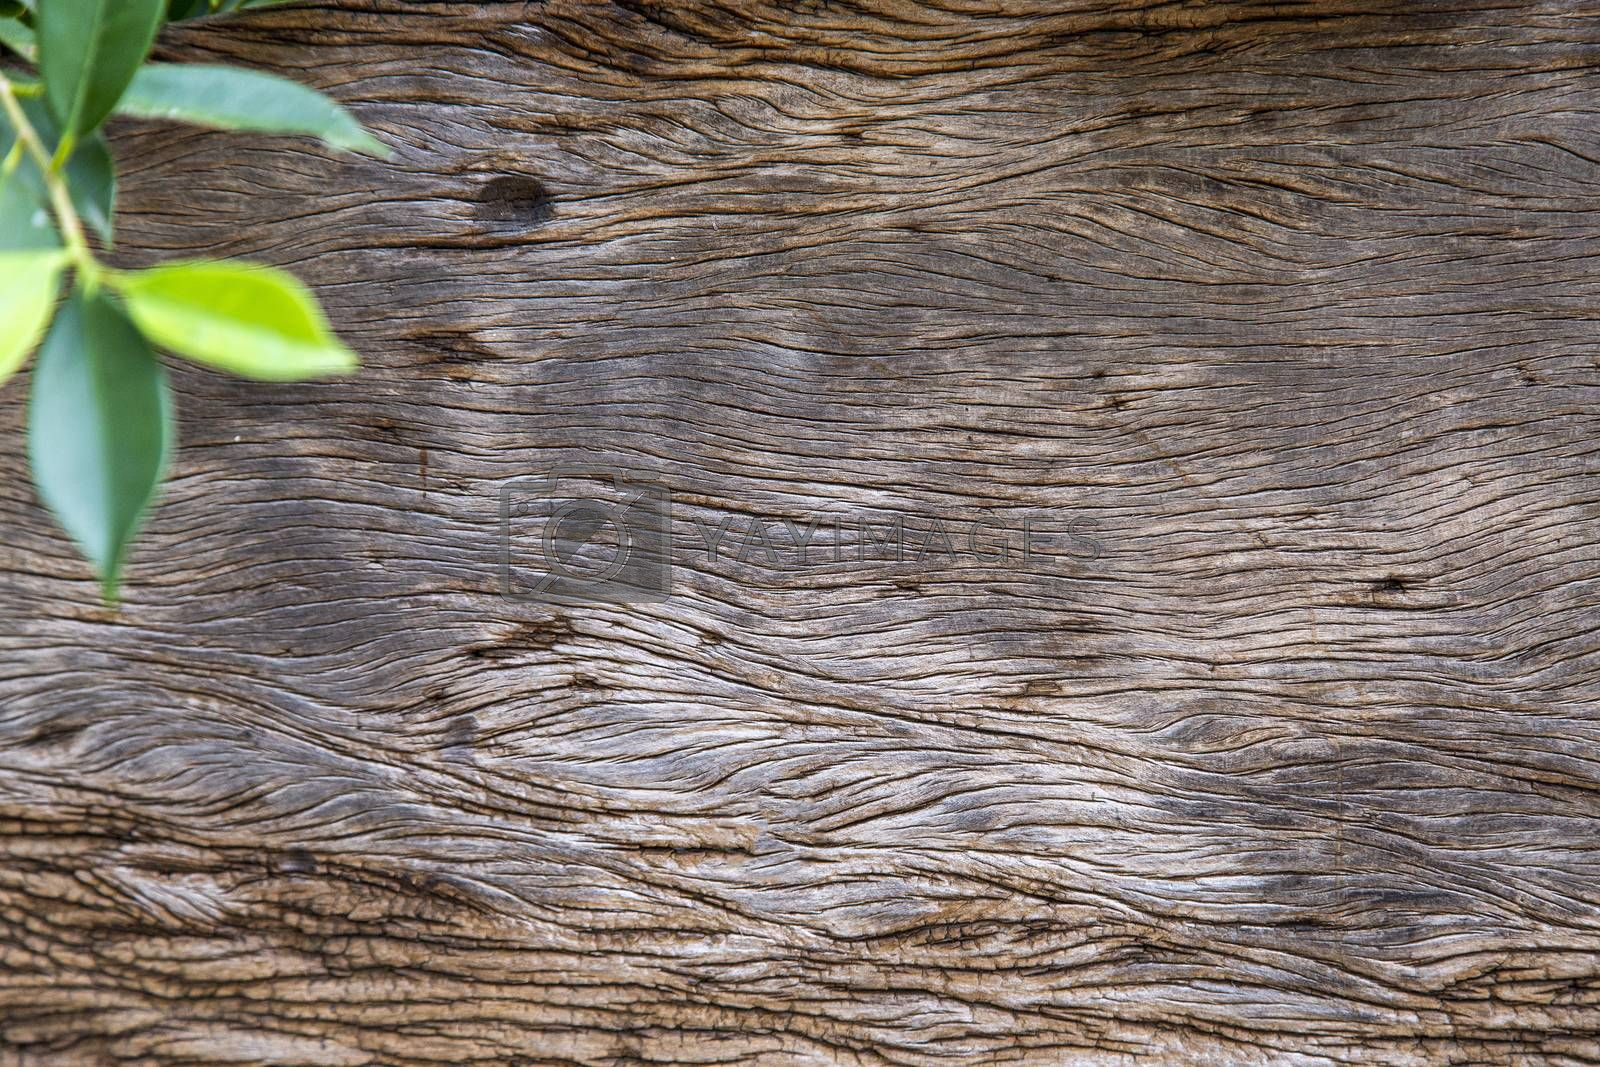 Background of wooden board with green leaf